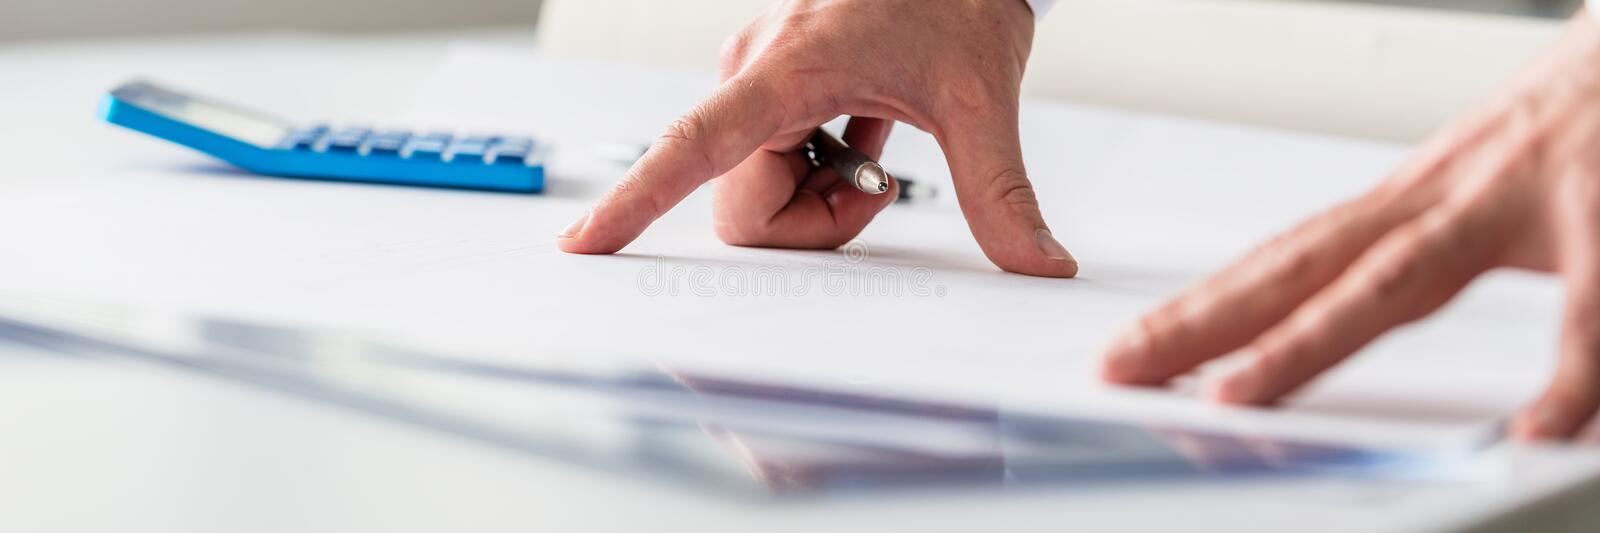 Wide view image of an engineer working on a project. With calculator and ruler on his paper royalty free stock photography